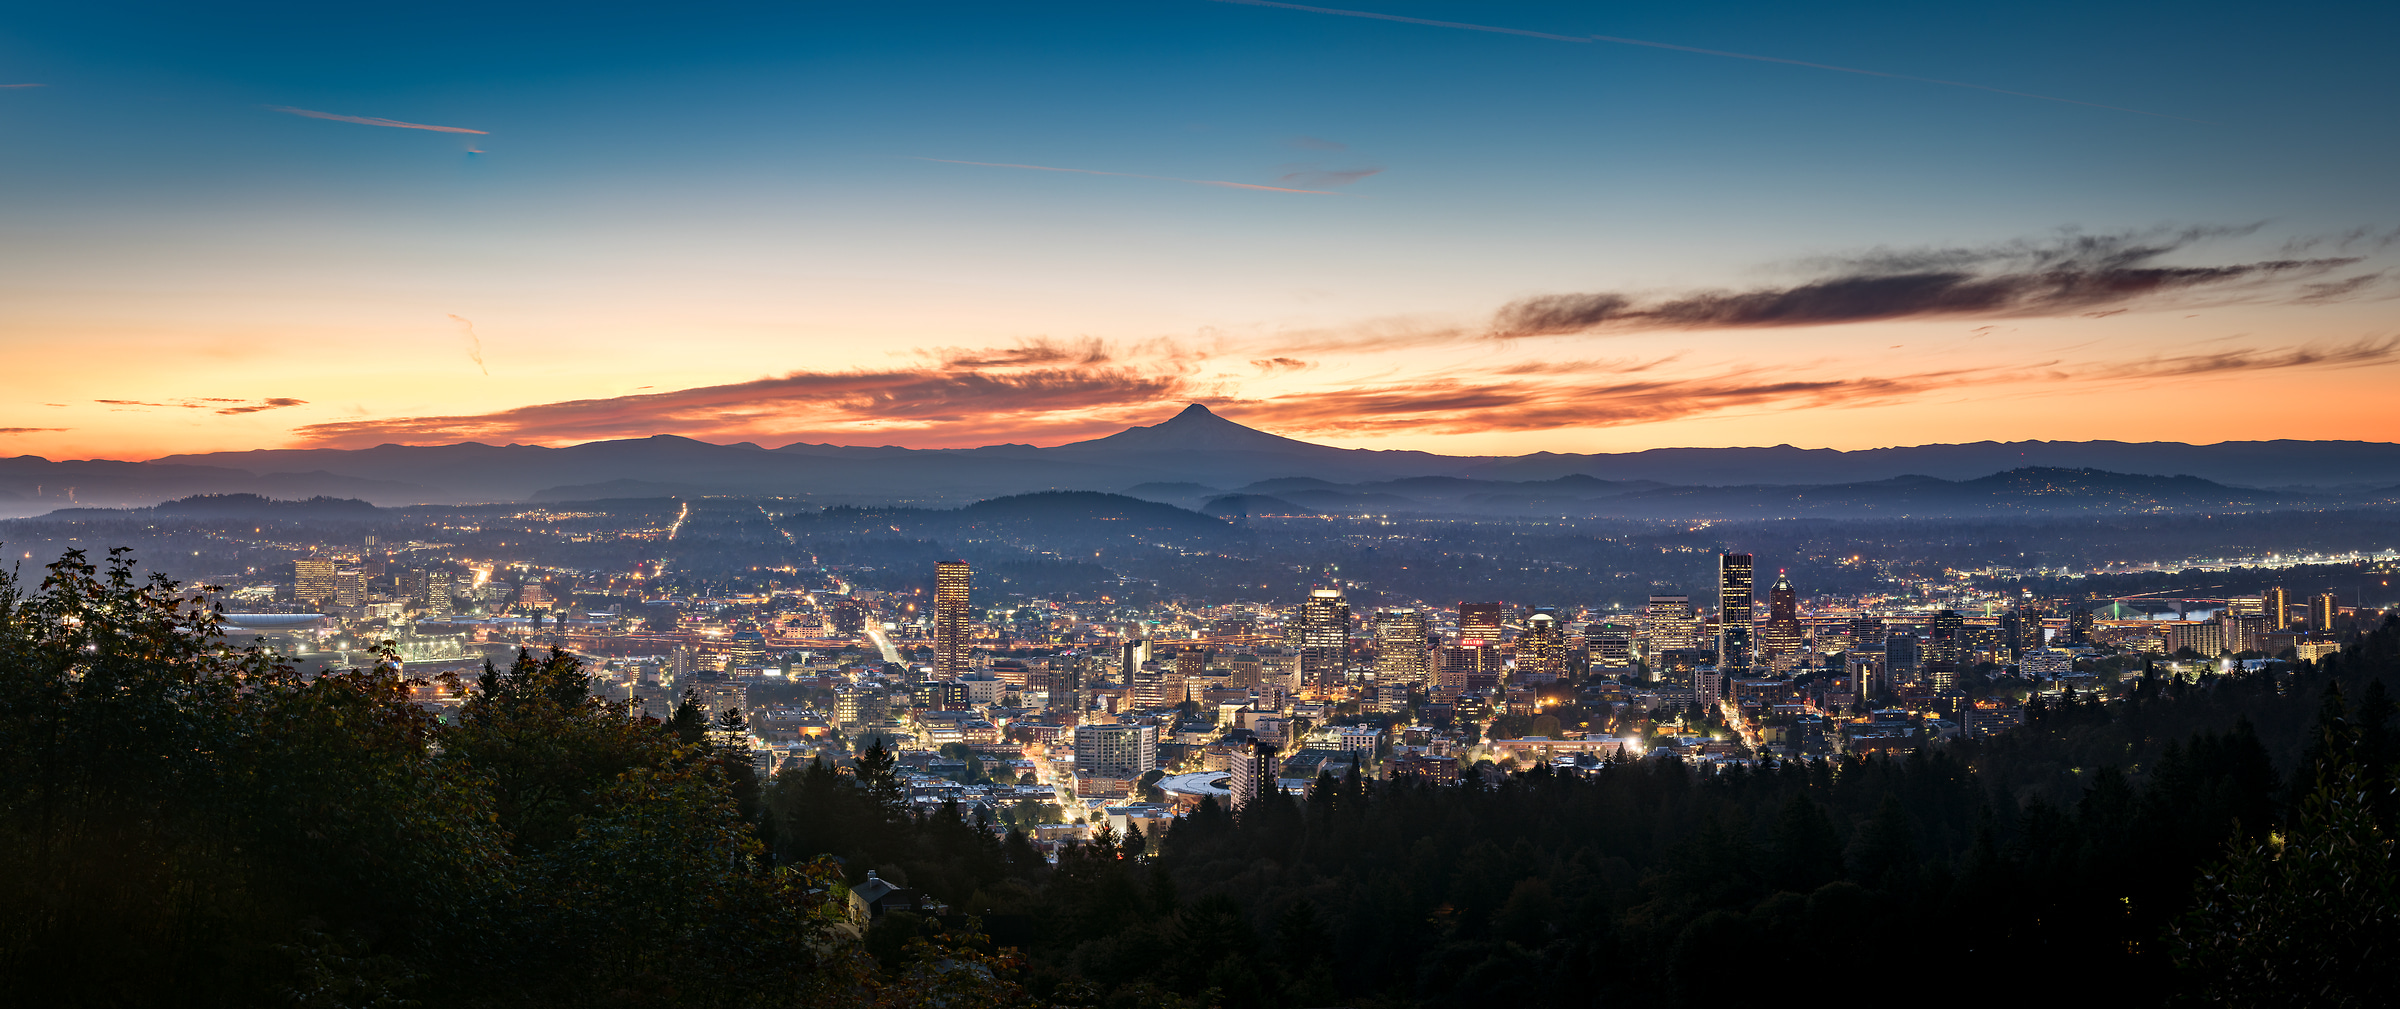 197 megapixels! A very high resolution, large-format VAST photo print of the Portland skyline; cityscape photograph created by Justin Katz in Portland, Oregon